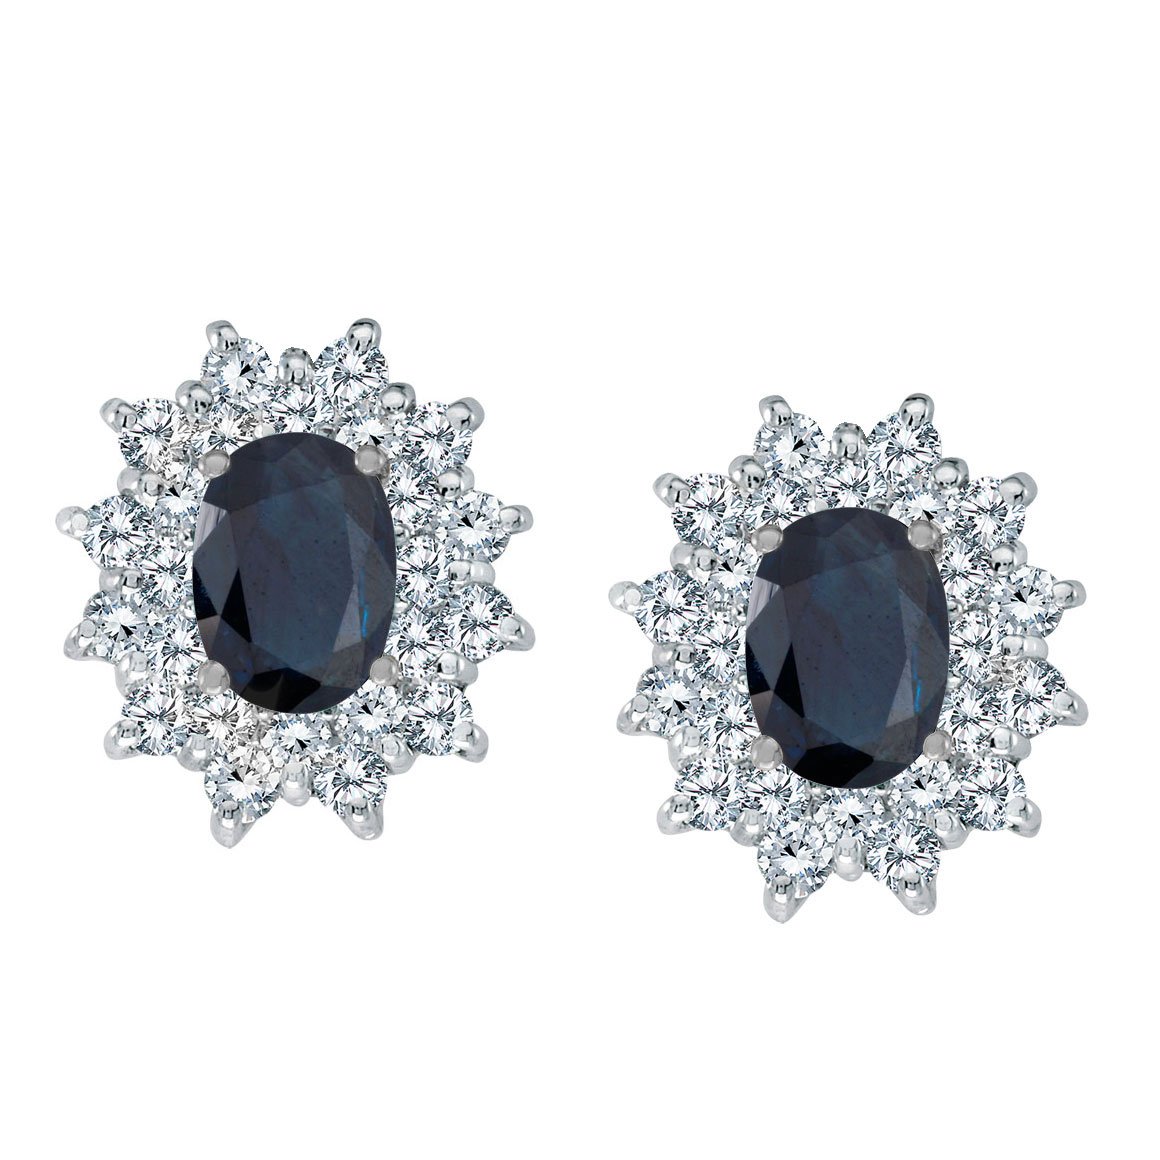 Bright 14k white gold earrings featuring 7x5 mm sapphires surrounded by 1.00 total carat of scint...